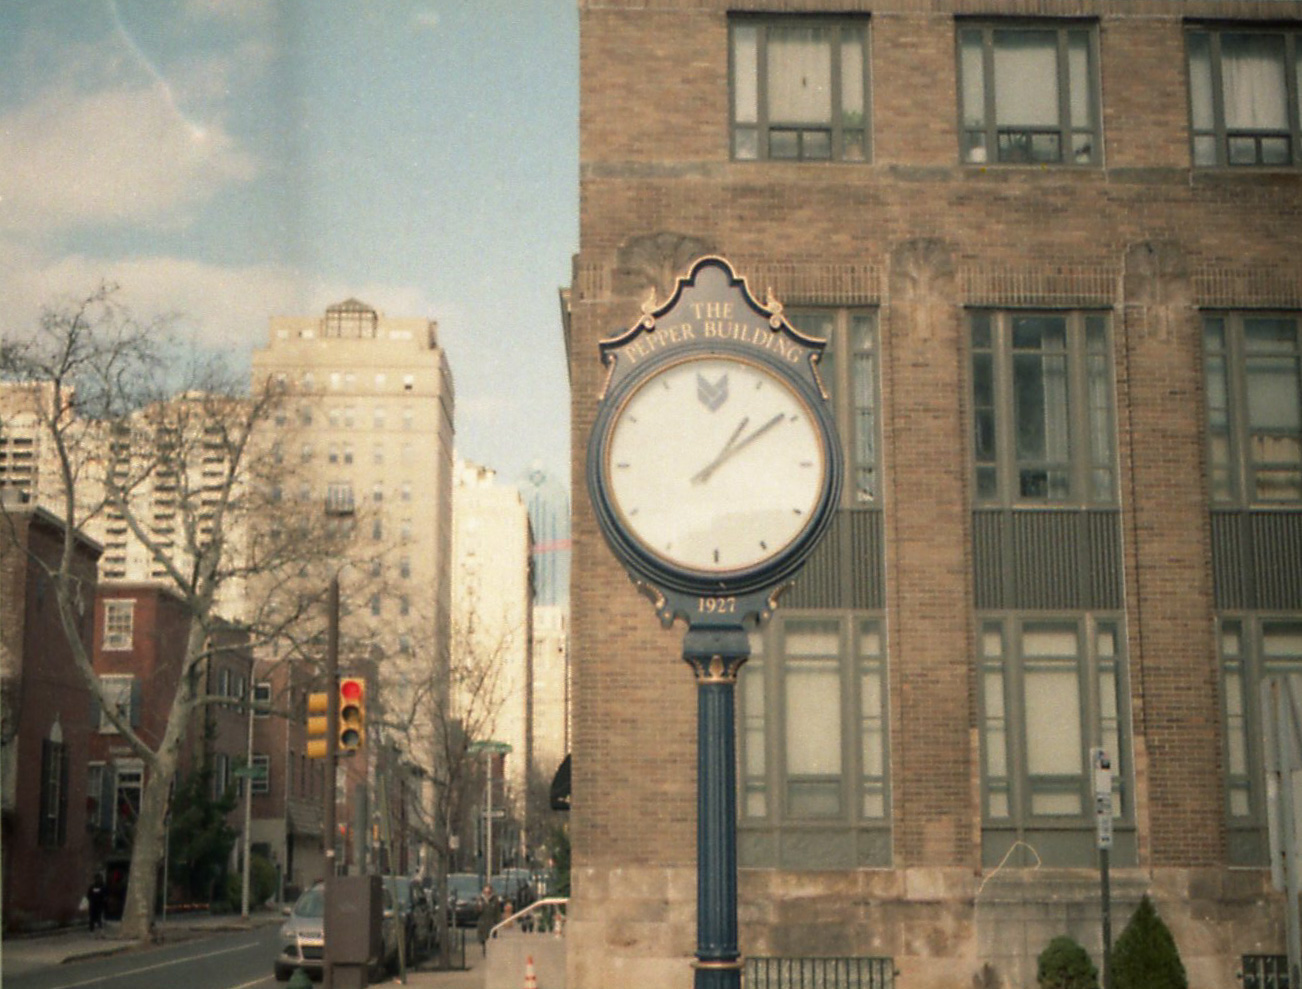 The Pepper Building Clock